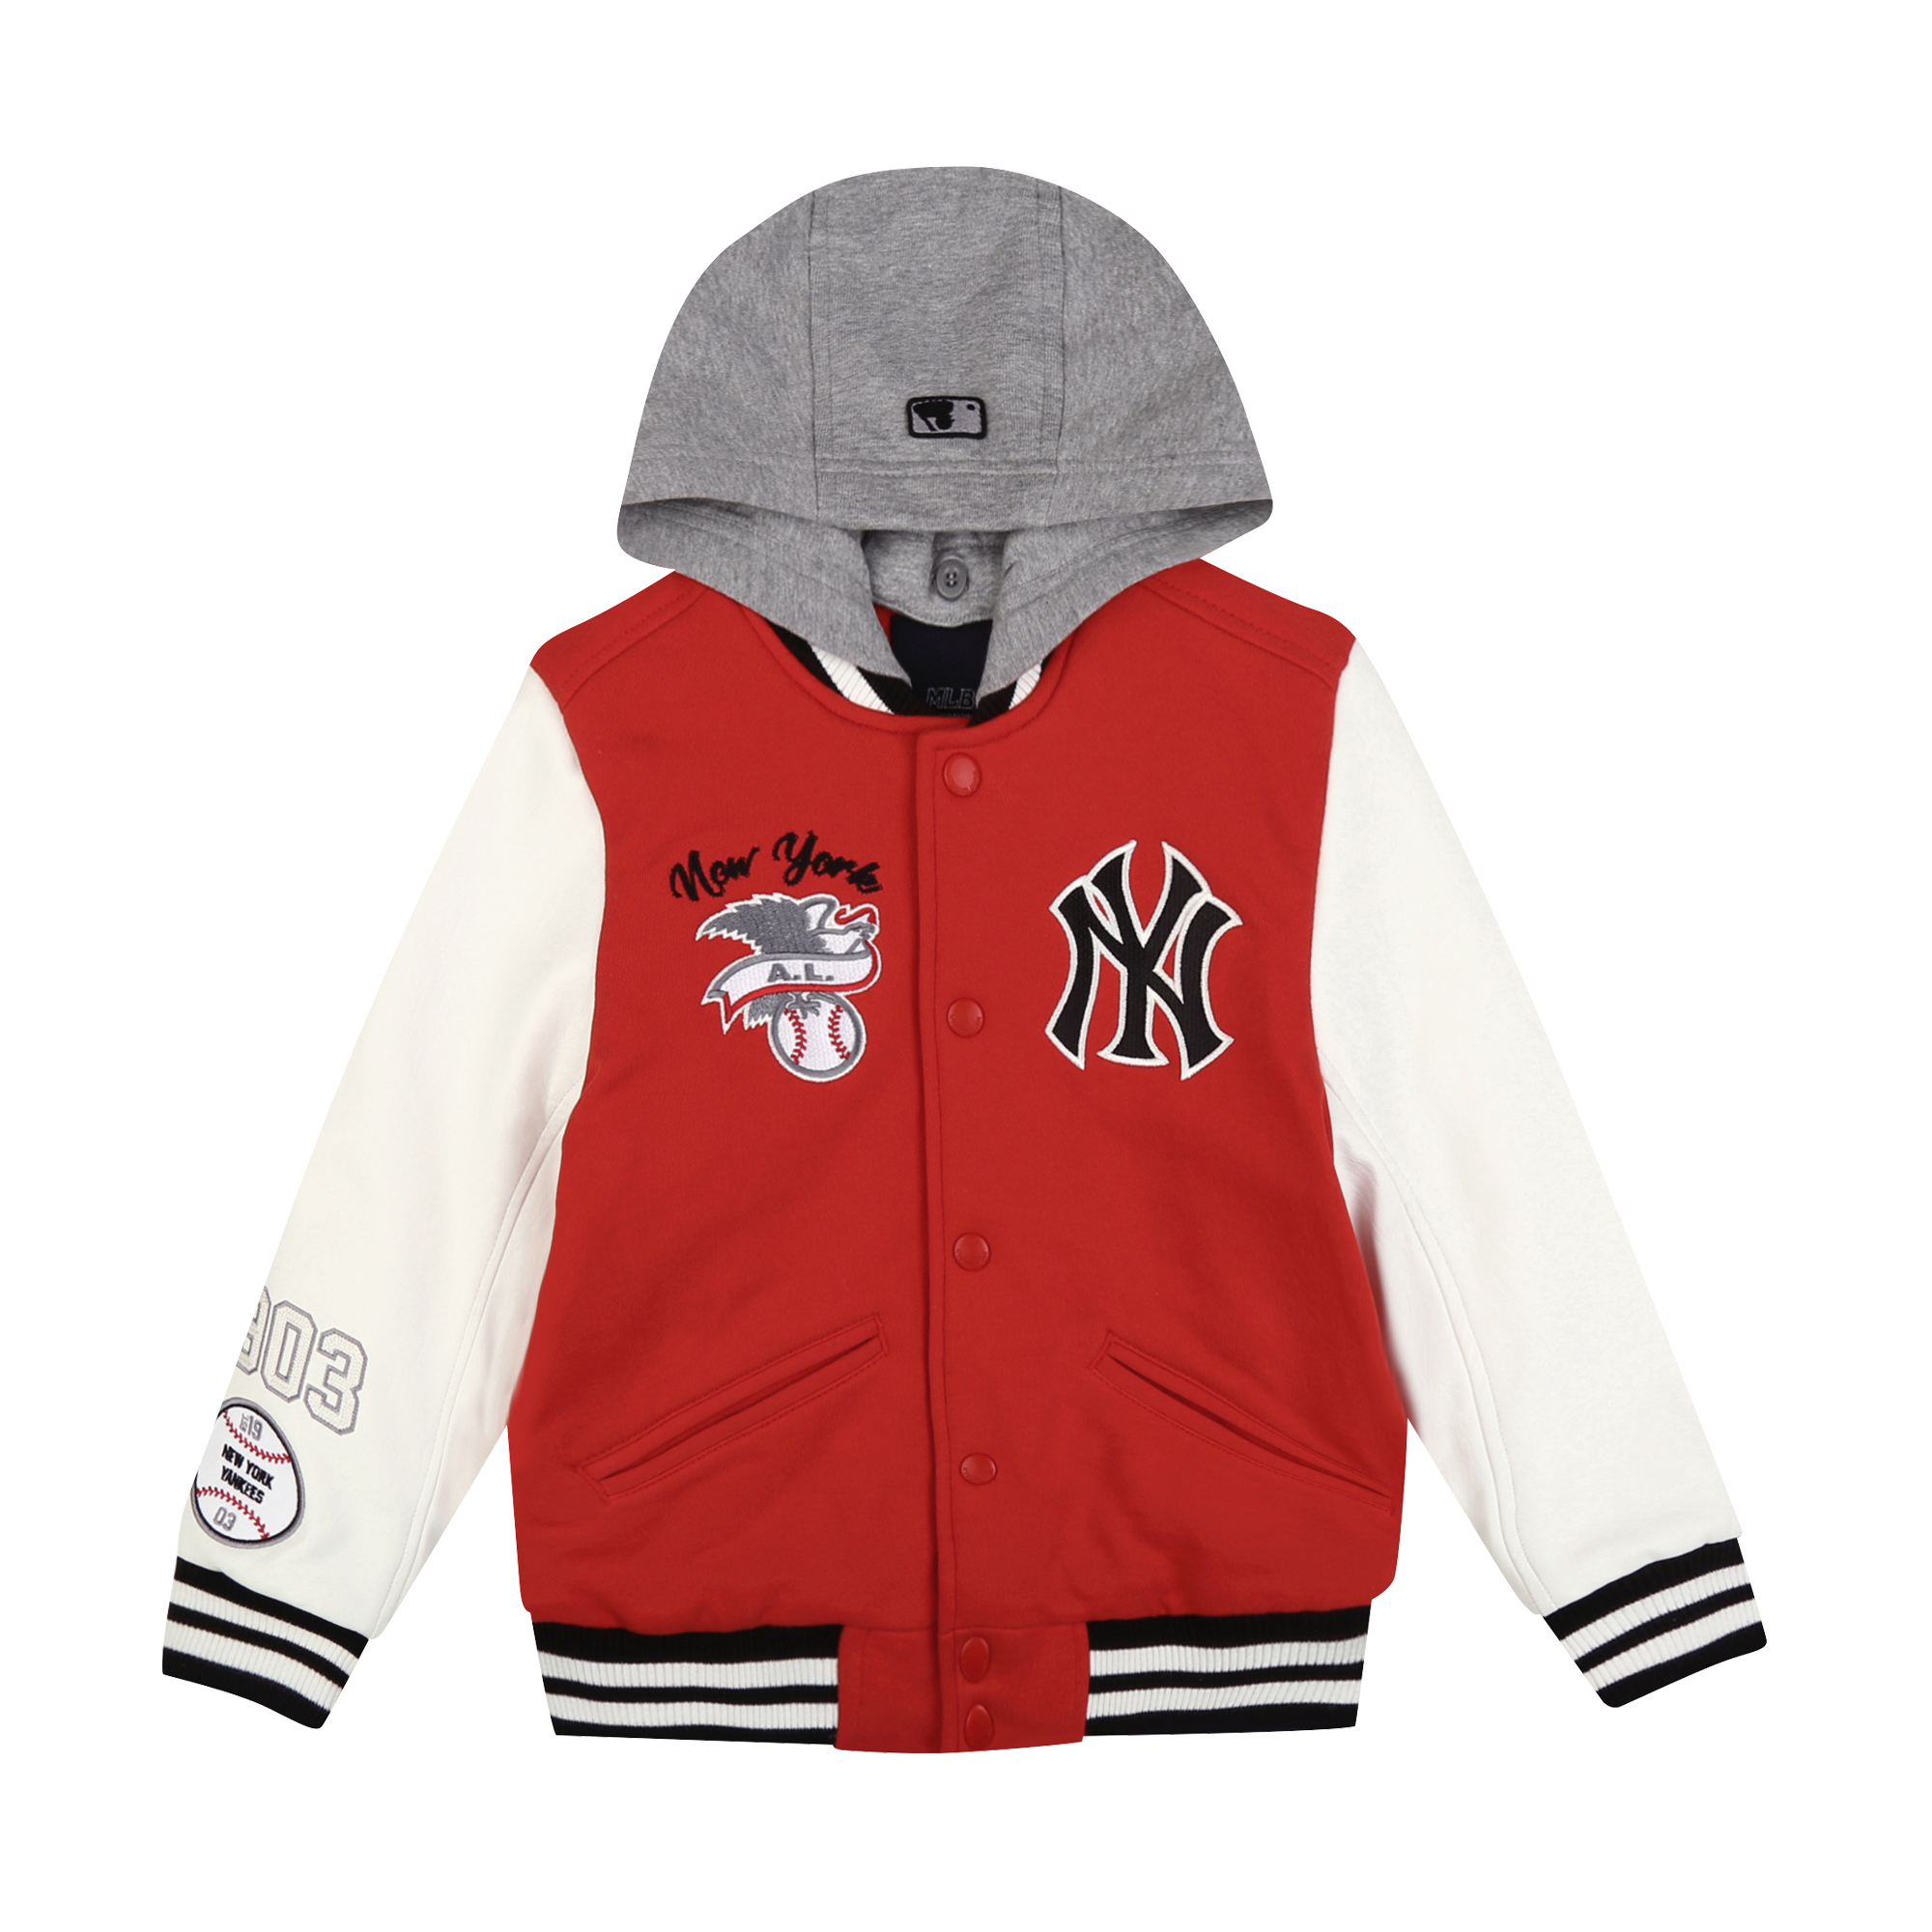 NEW YORK YANKEES UNISEX CAMPUS MONSTER VARSITY JACKET